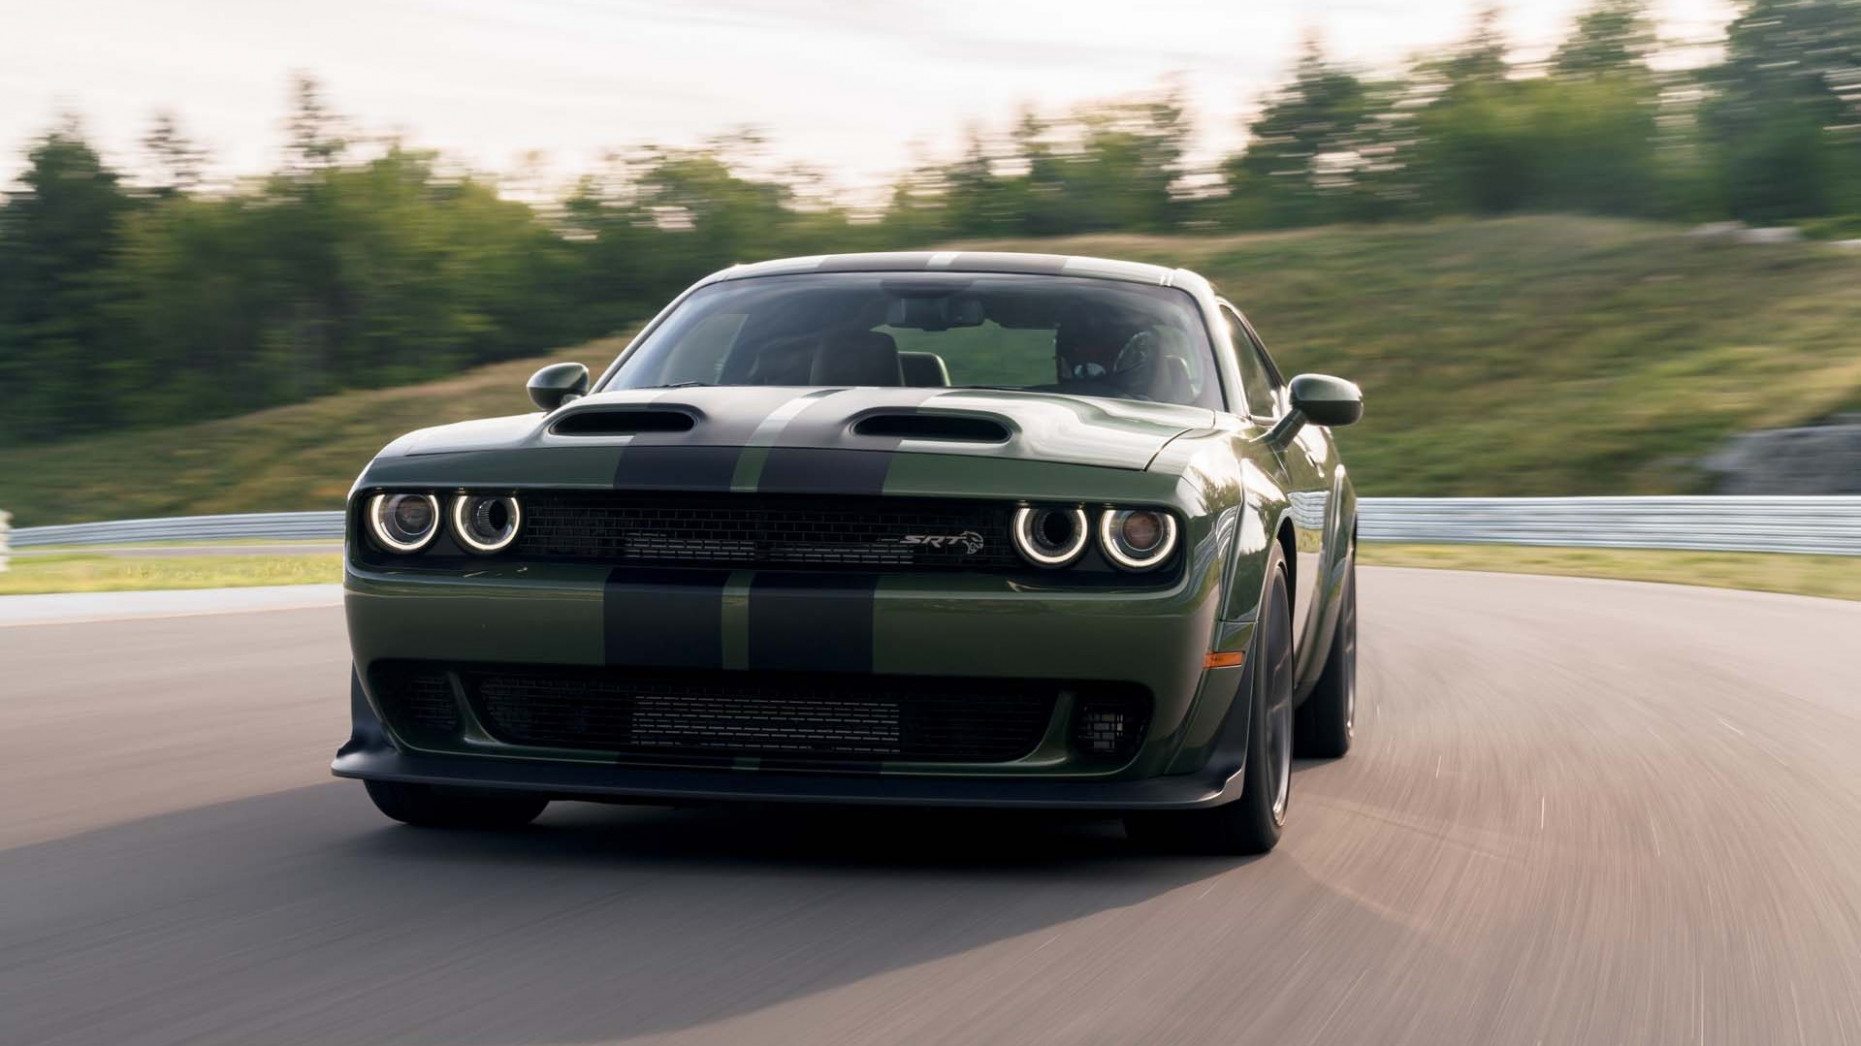 12 Dodge Challenger preview - price of 2020 dodge challenger